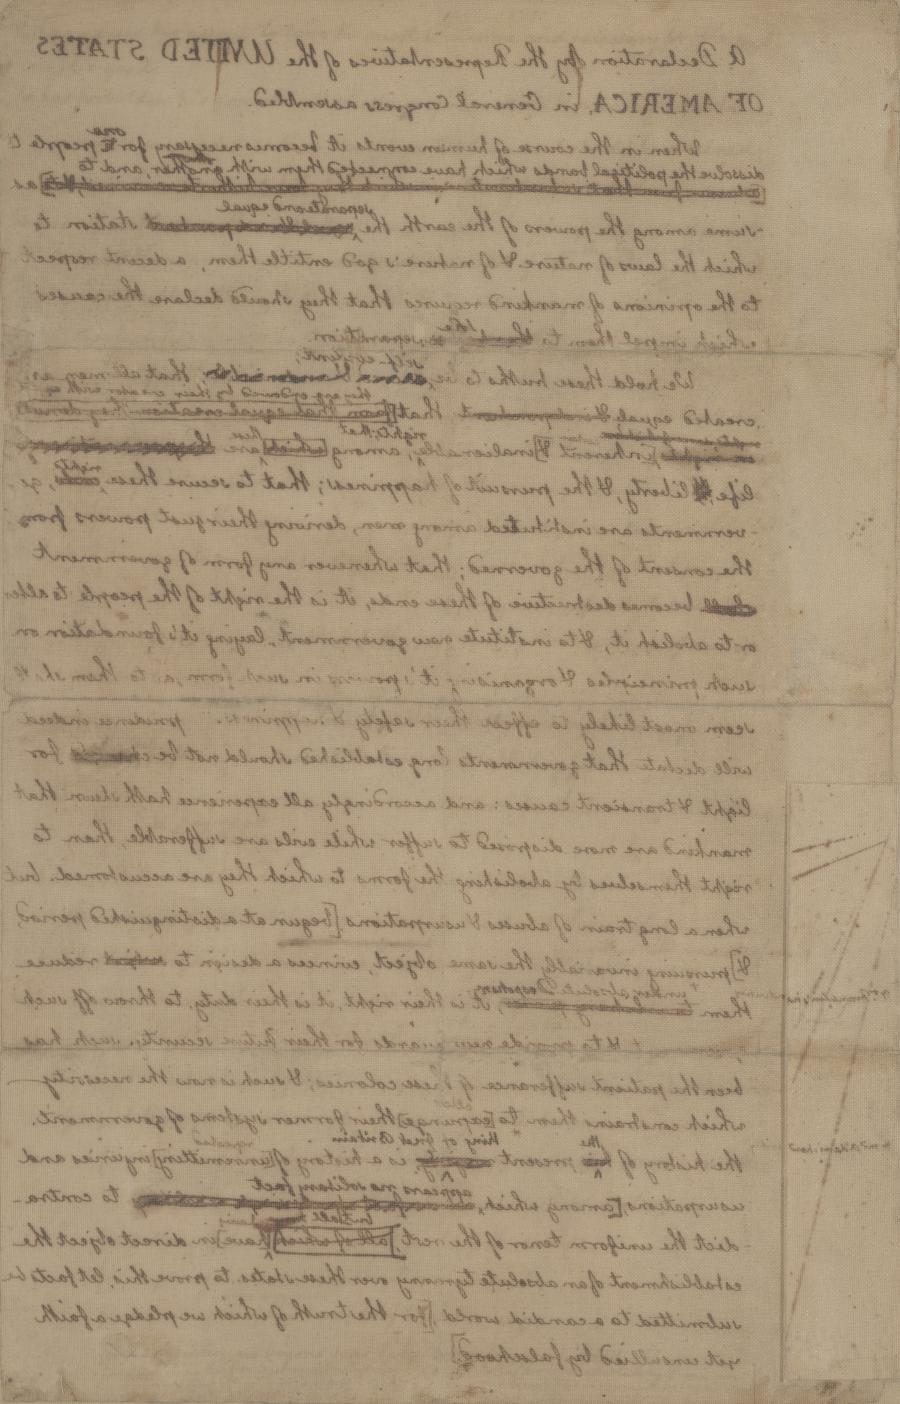 A history of the declaration of independence of the united states